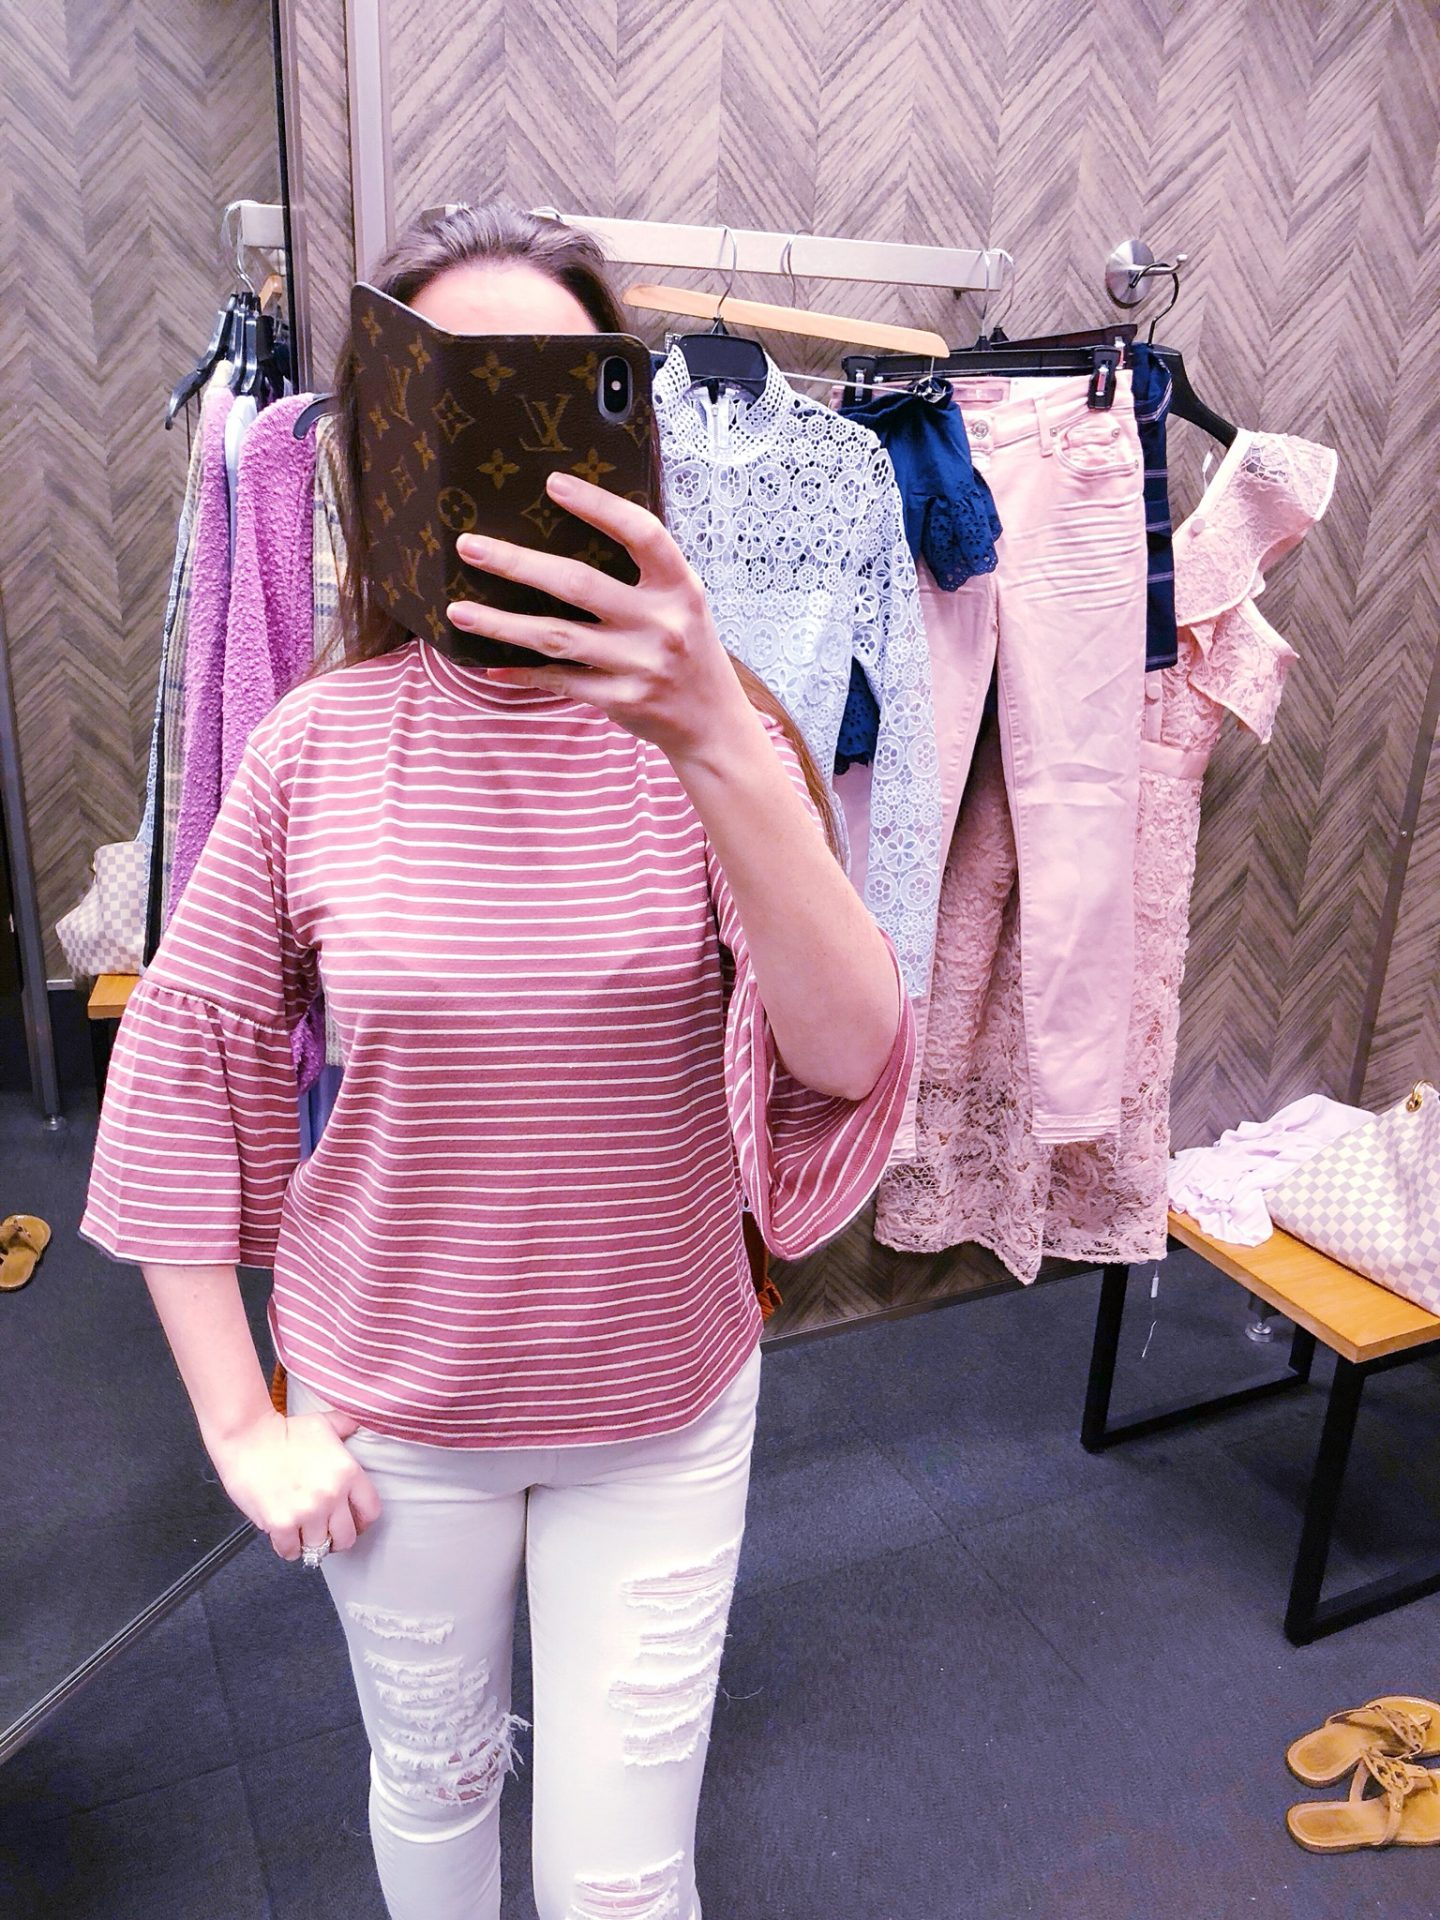 billabong top, billabong today's crush bell sleeve top, striped bell sleeve top, Nordstrom anniversary sale, Nordstrom anniversary sale 2018, Nordstrom anniversary sale haul, Nordstrom anniversary sale dressing room try-on